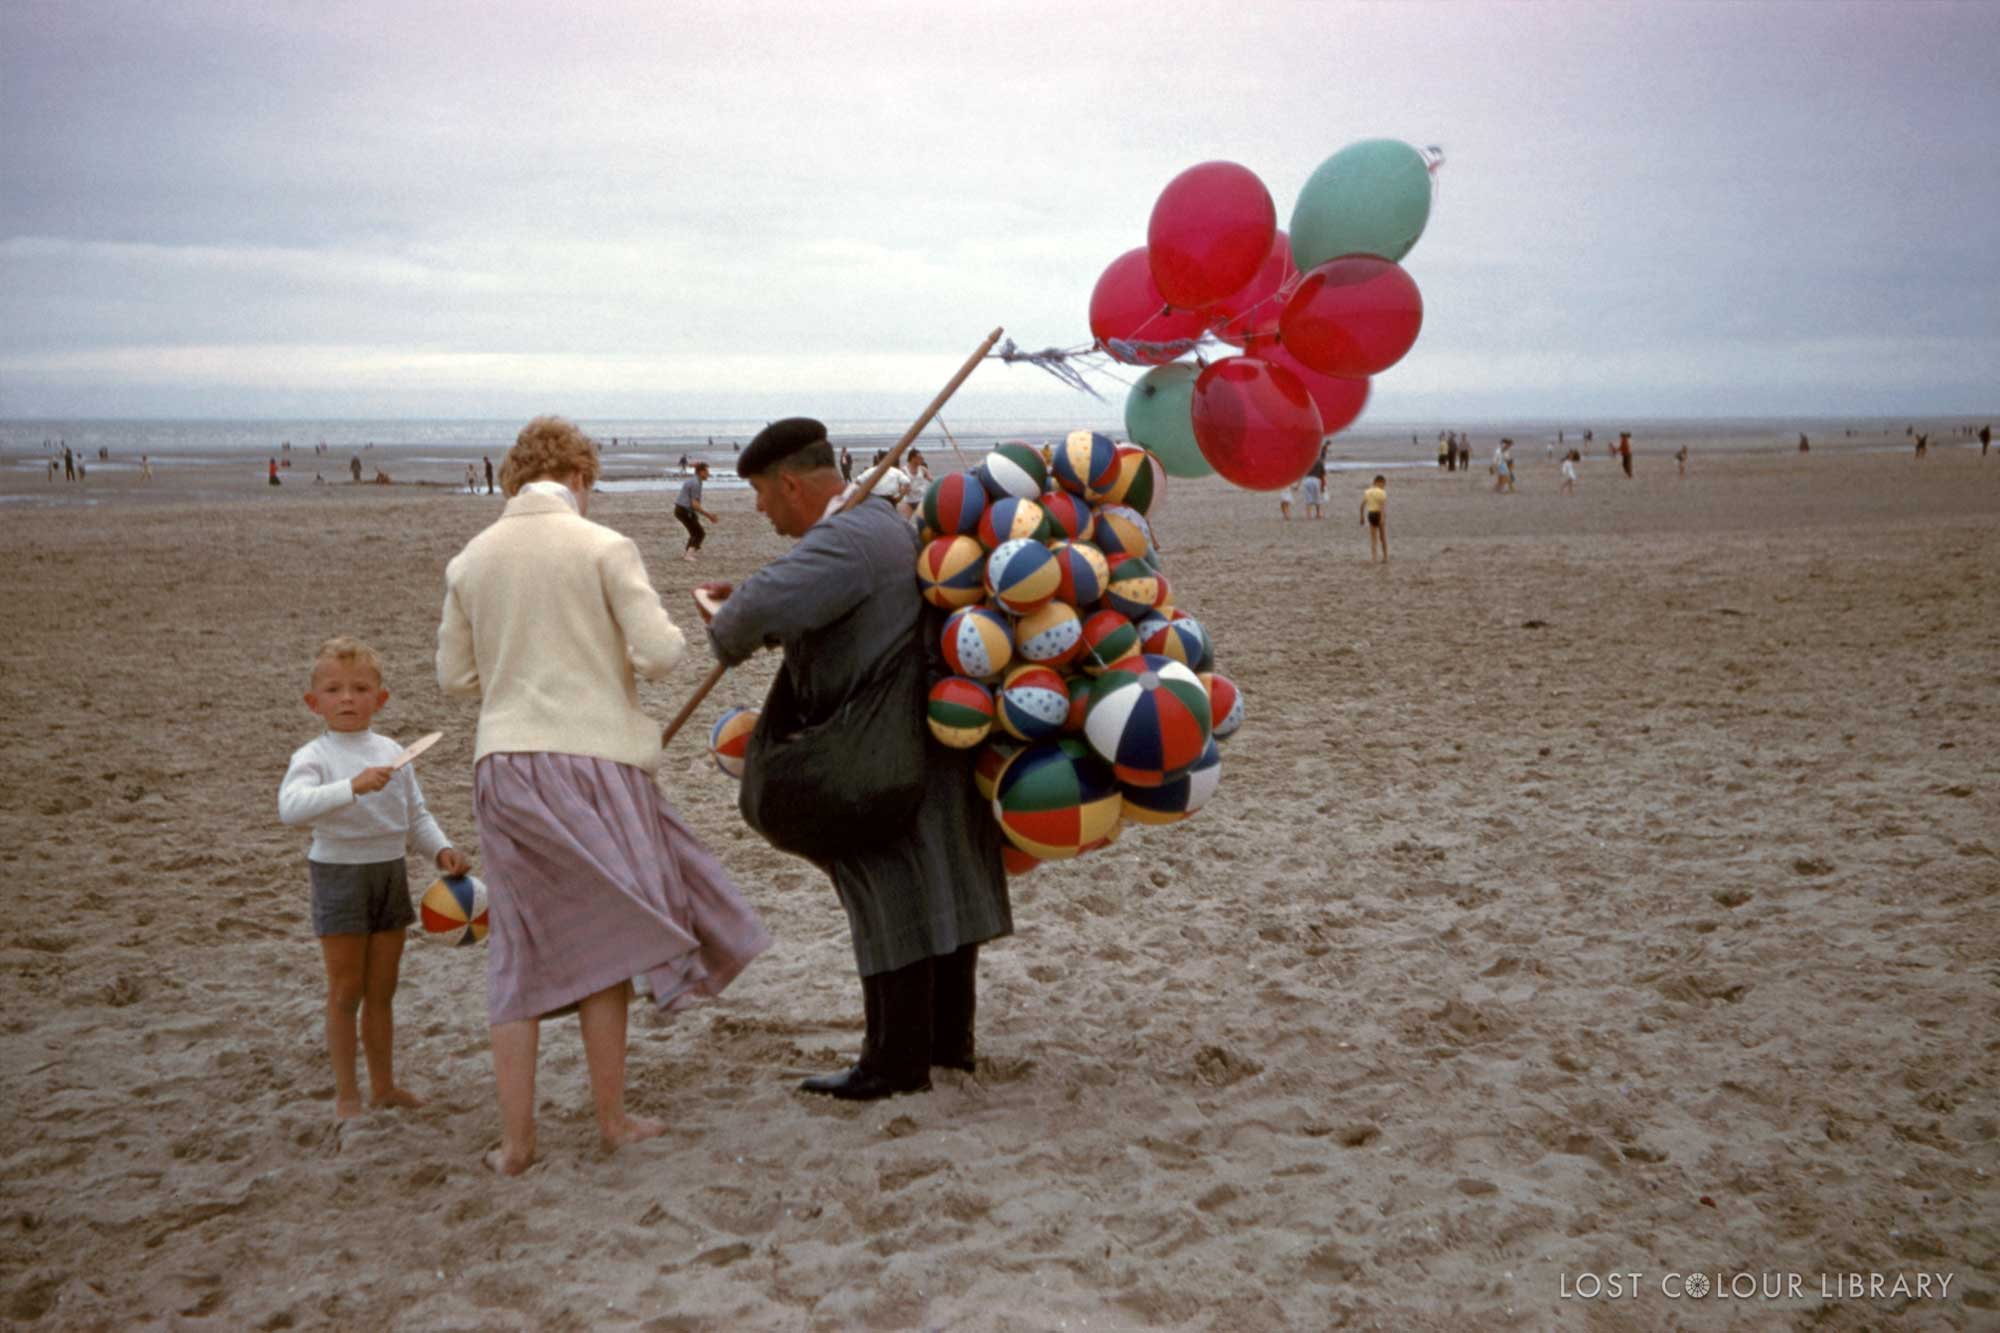 lcl-ww-ballon-seller-1955-site-wm.jpg